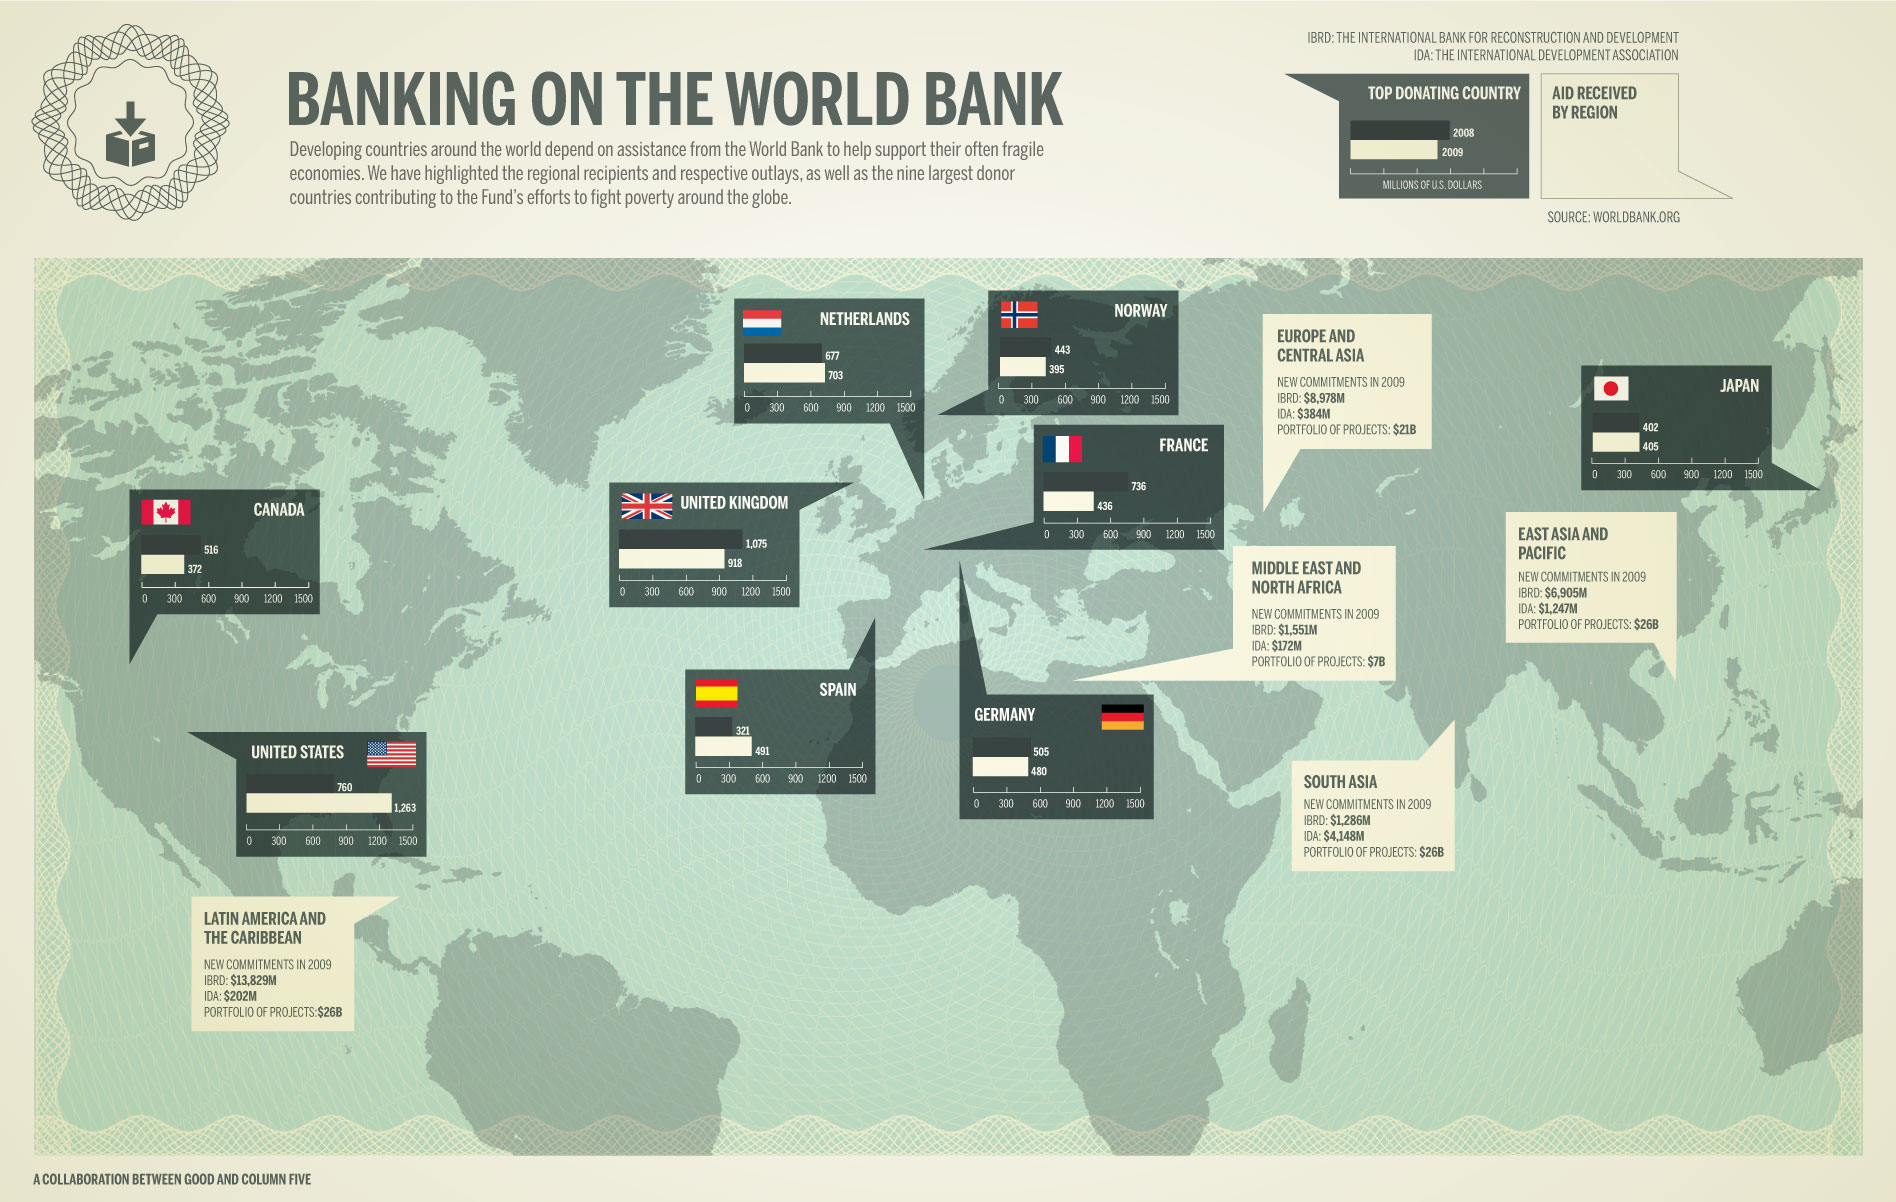 Banking on the world bank shows that each countries around the world are depending on its assistance to help them support their often fragile economies.